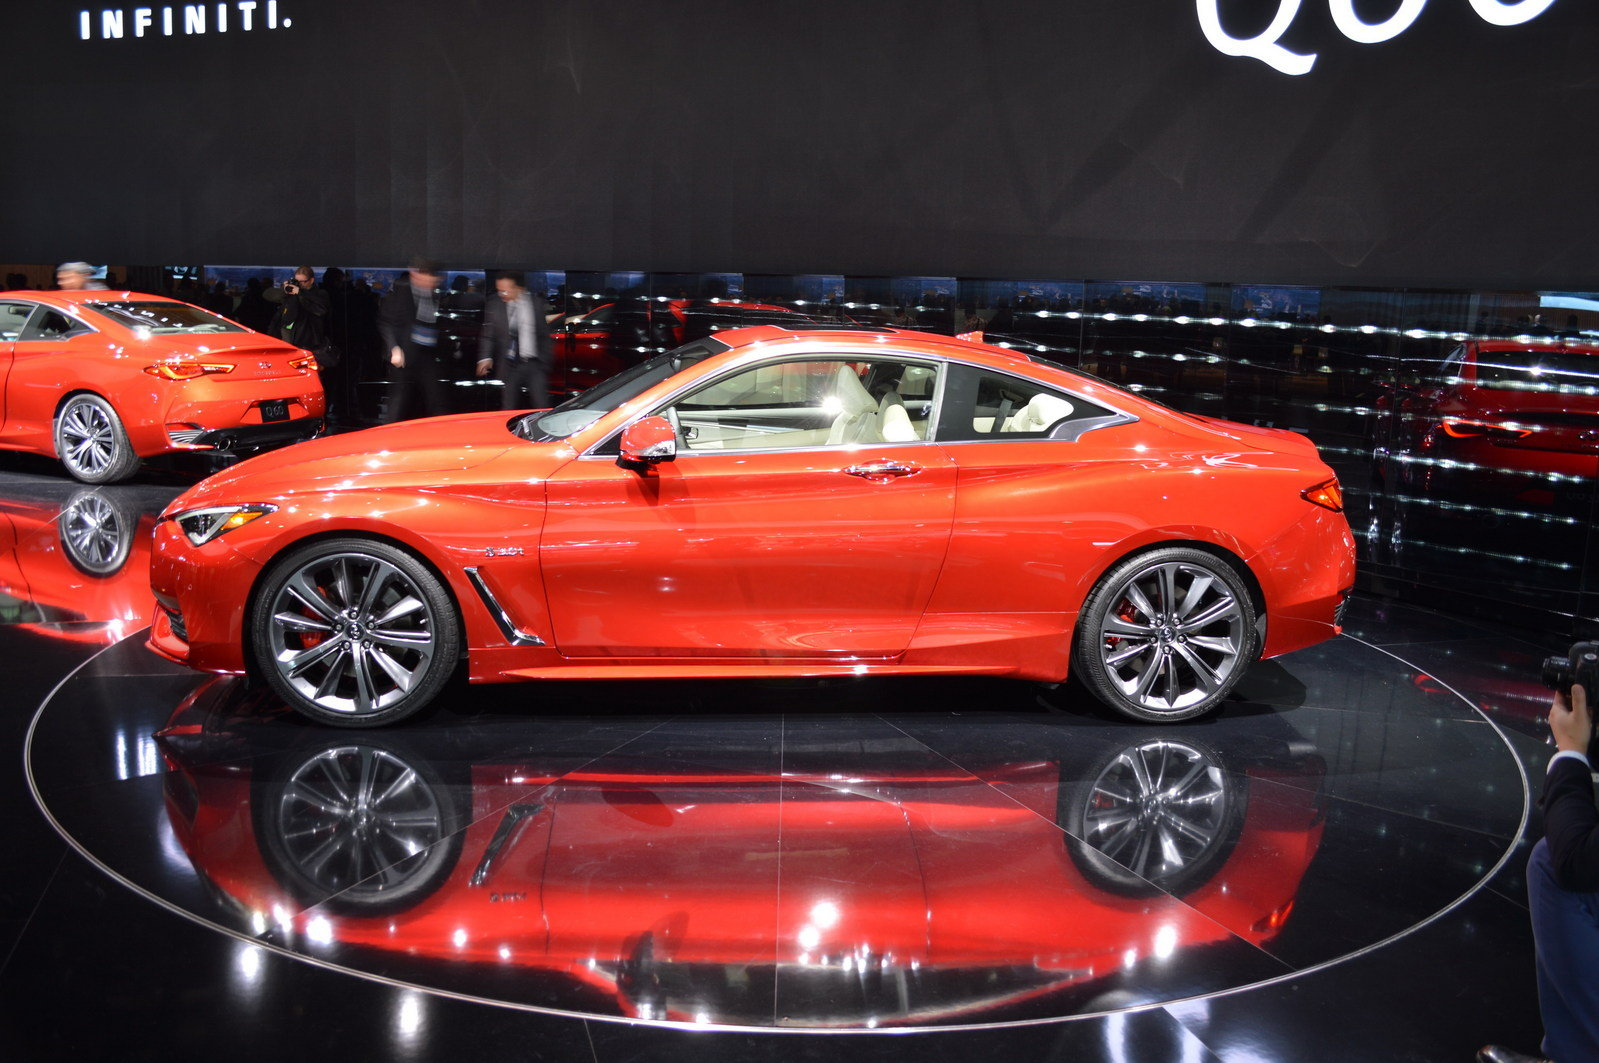 2017 infiniti q60 coupe picture 661655 car review top speed. Black Bedroom Furniture Sets. Home Design Ideas